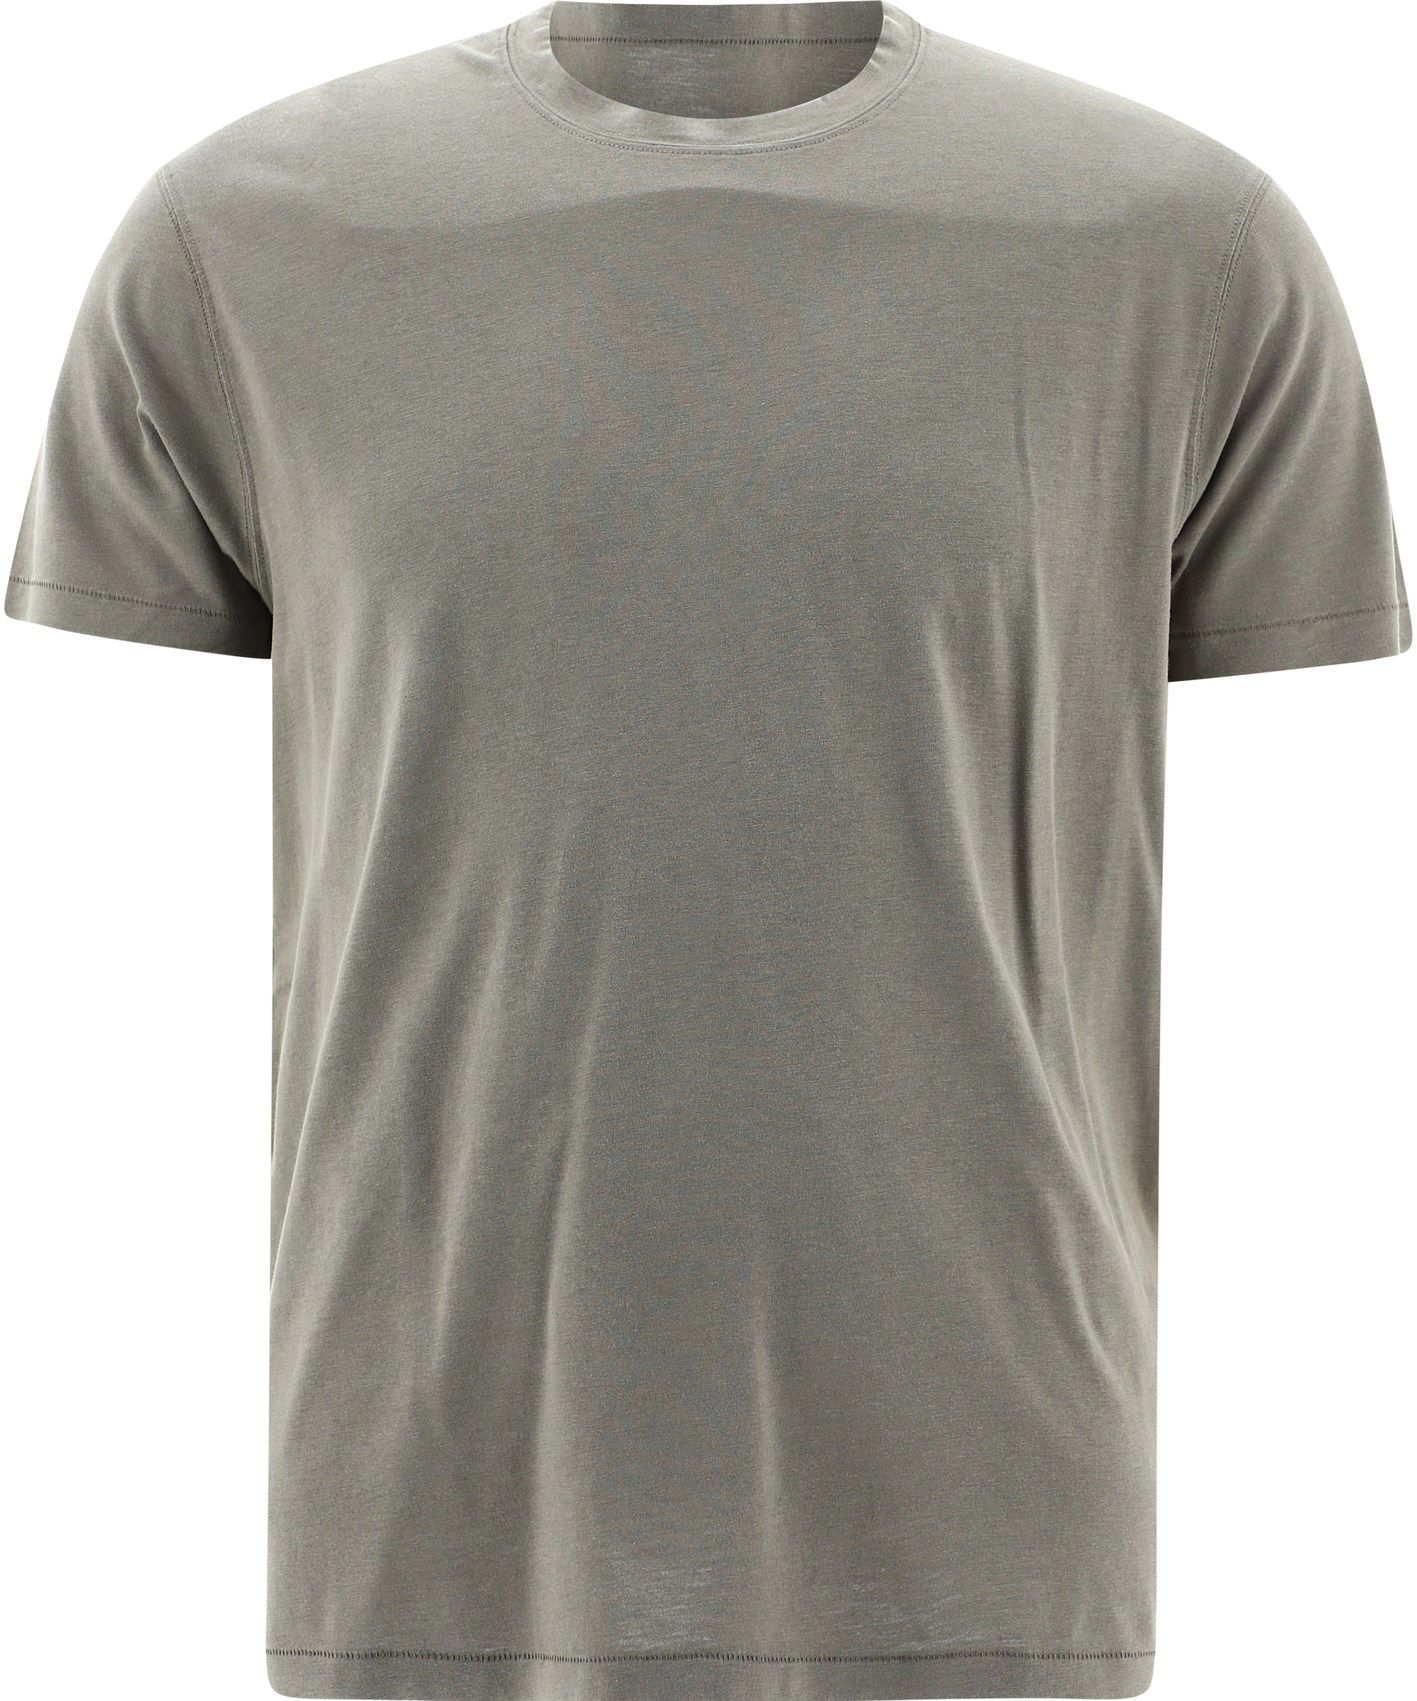 Tom Ford T-shirts TOM FORD MEN'S BW229TFJ950V17 GREEN OTHER MATERIALS T-SHIRT